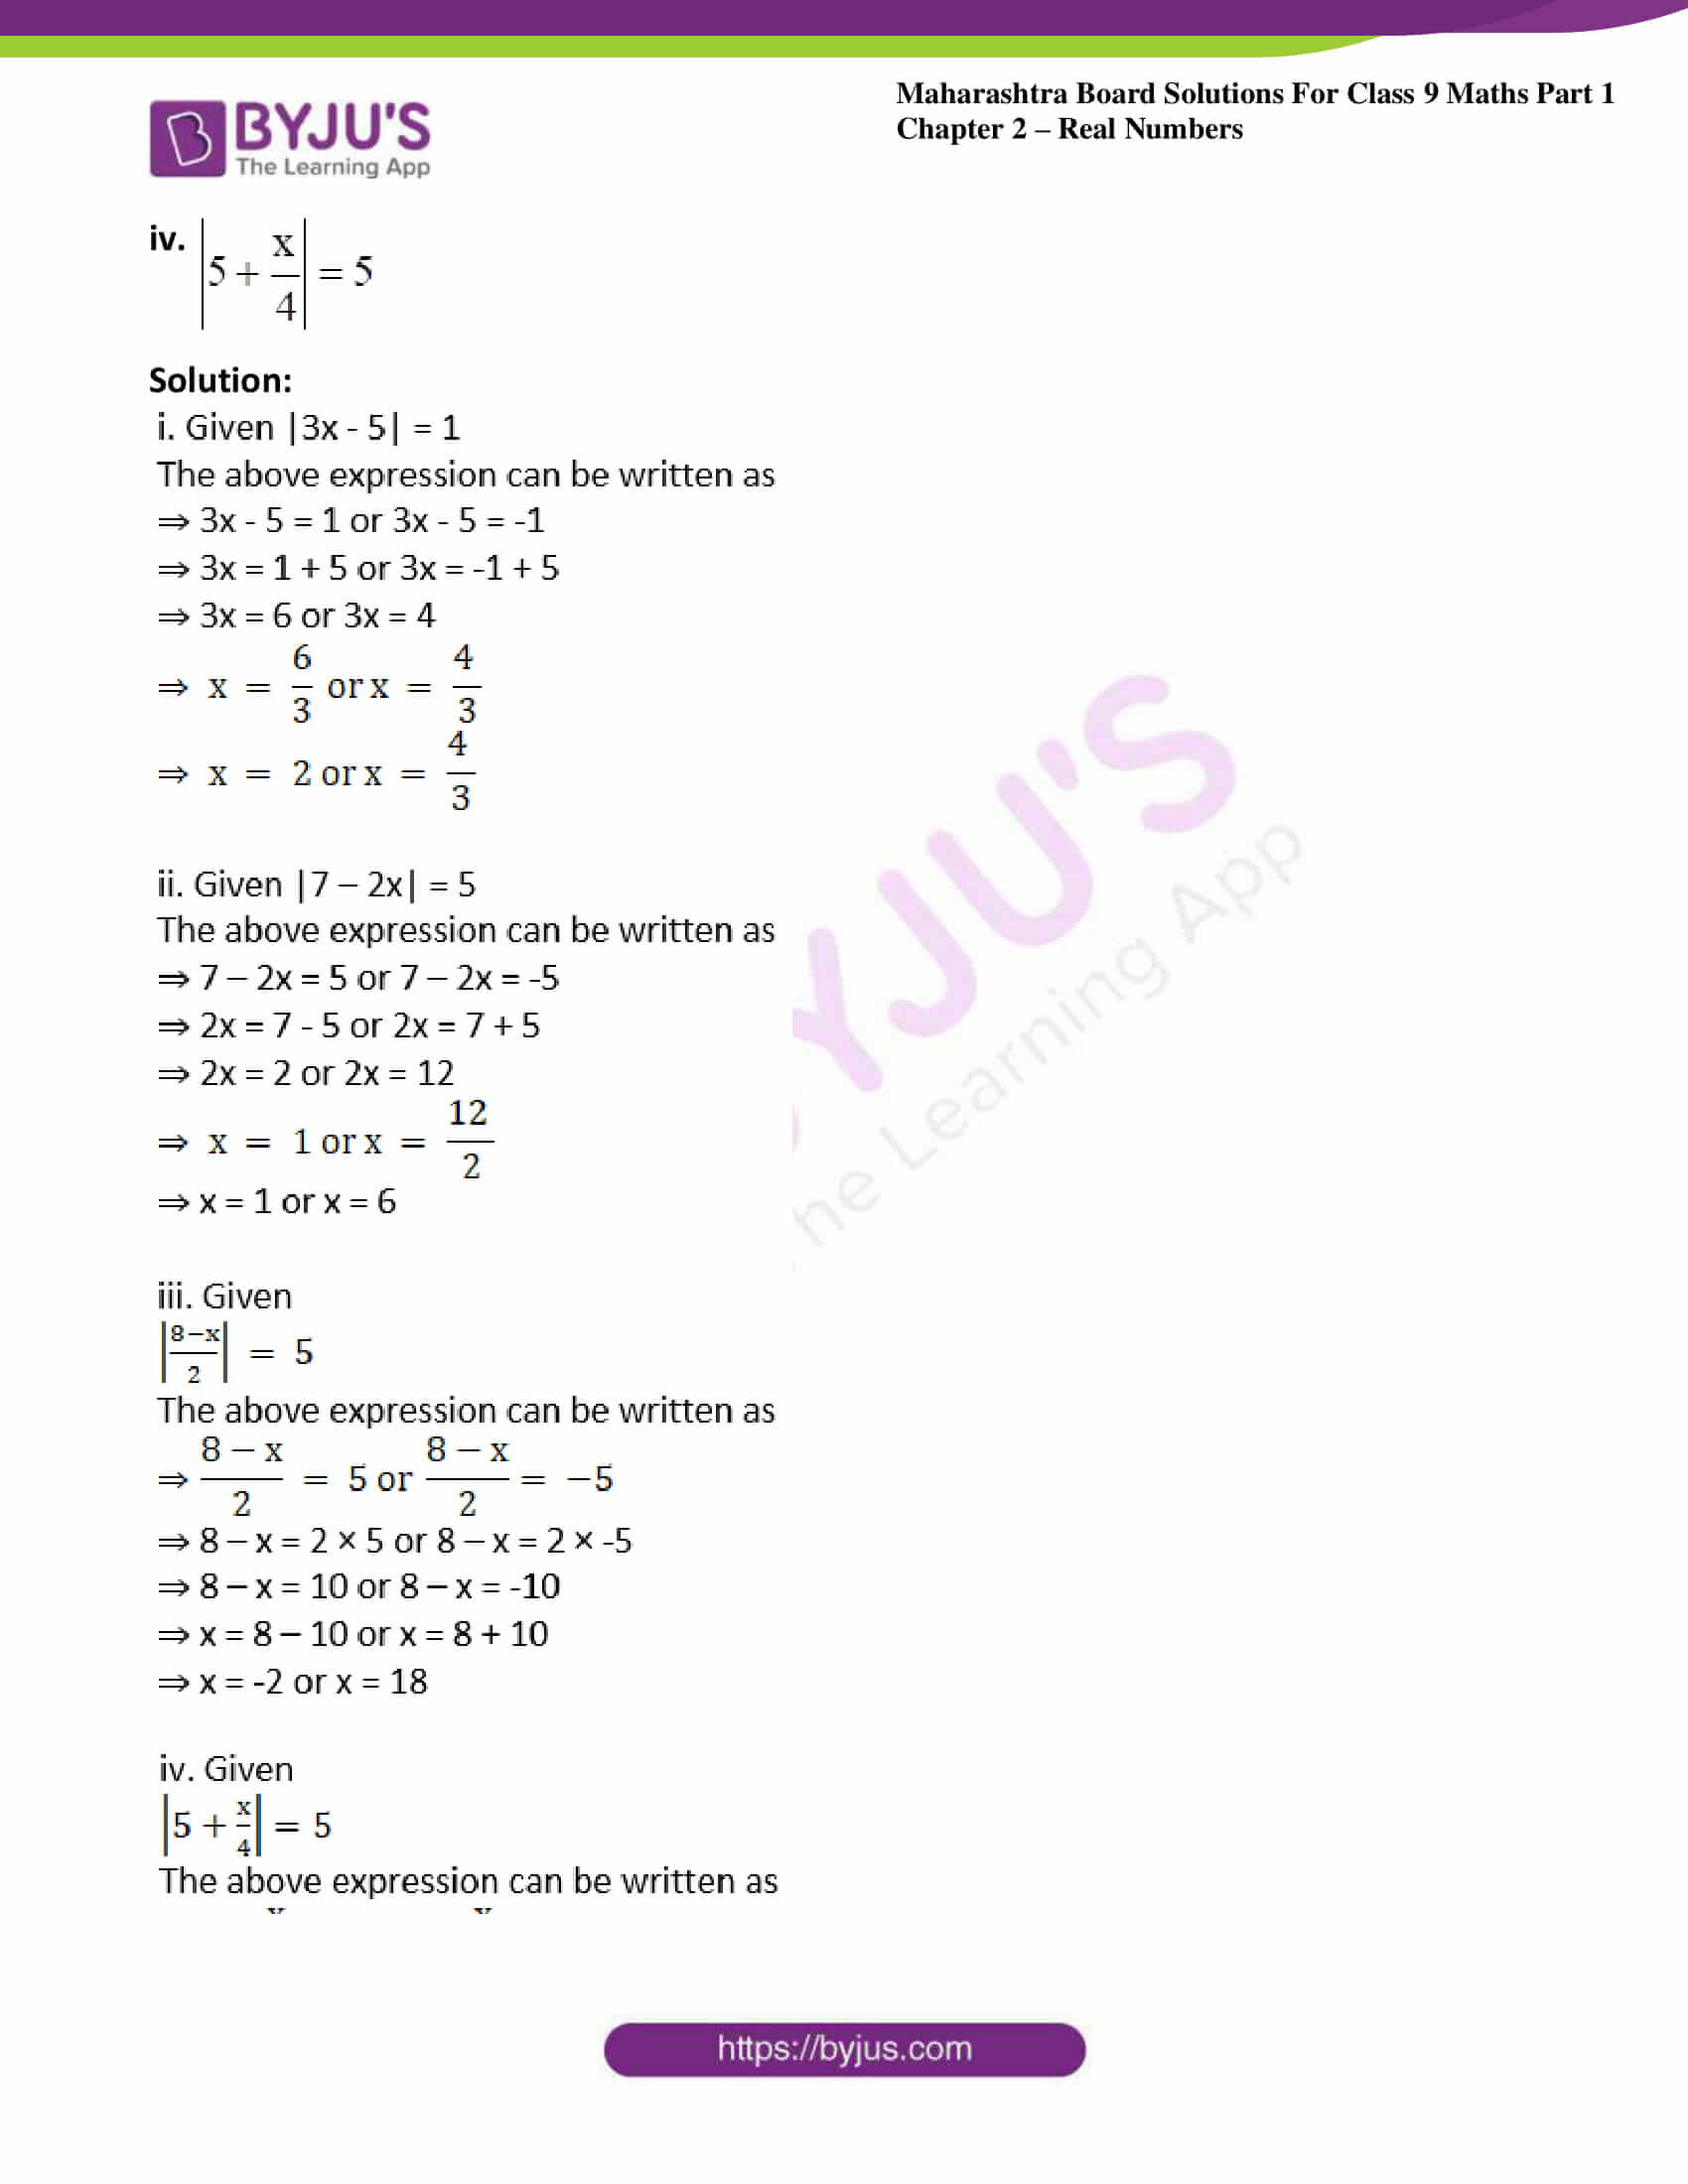 msbshse sol class 9 maths part 1 chapter 2 real numbers 22